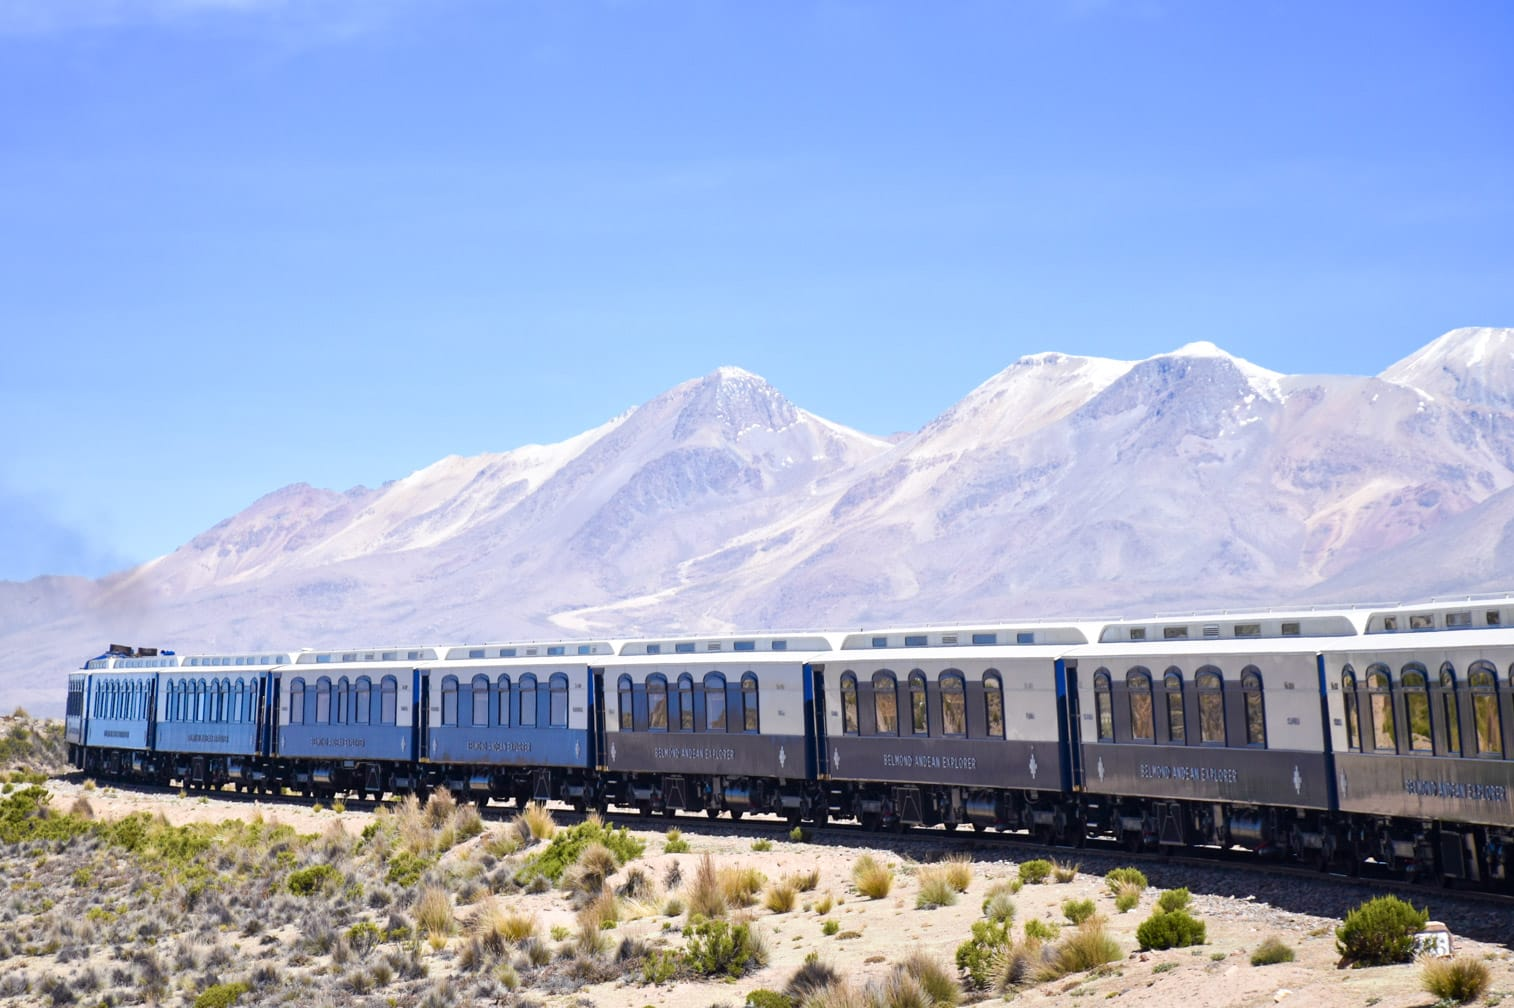 Belmond Andean Explorer train with mountains in the background